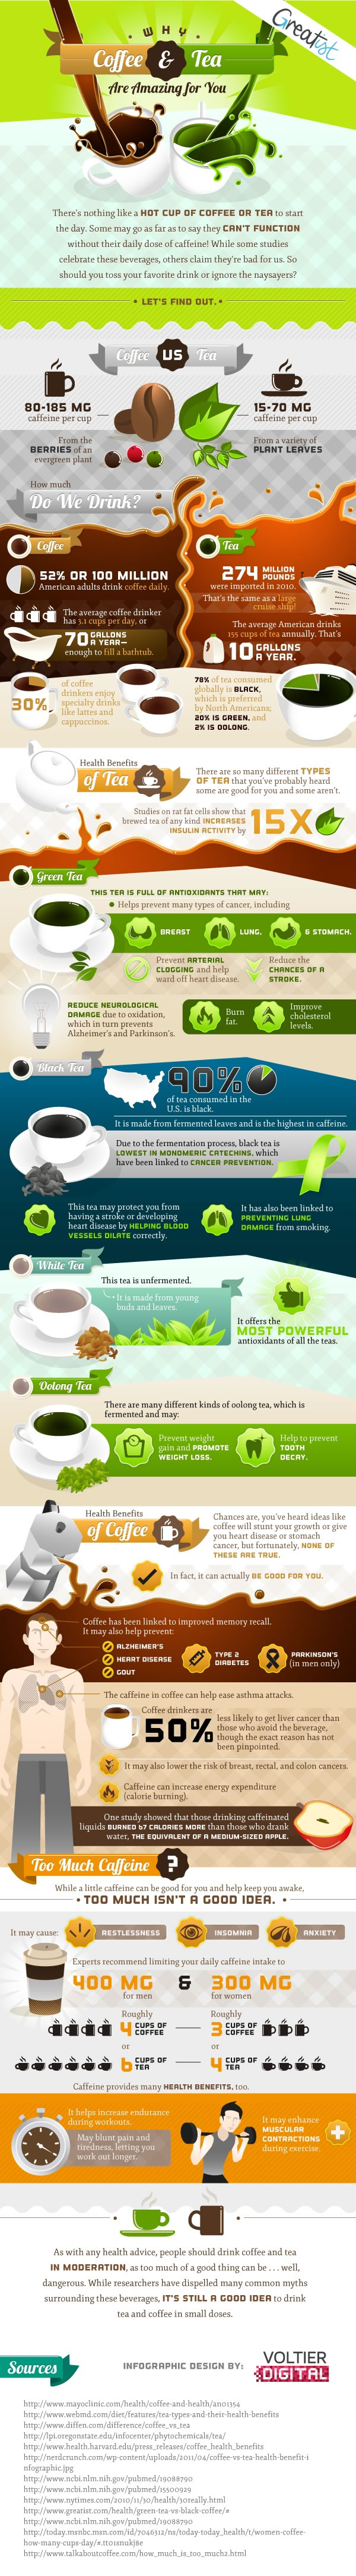 coffee tea benefits